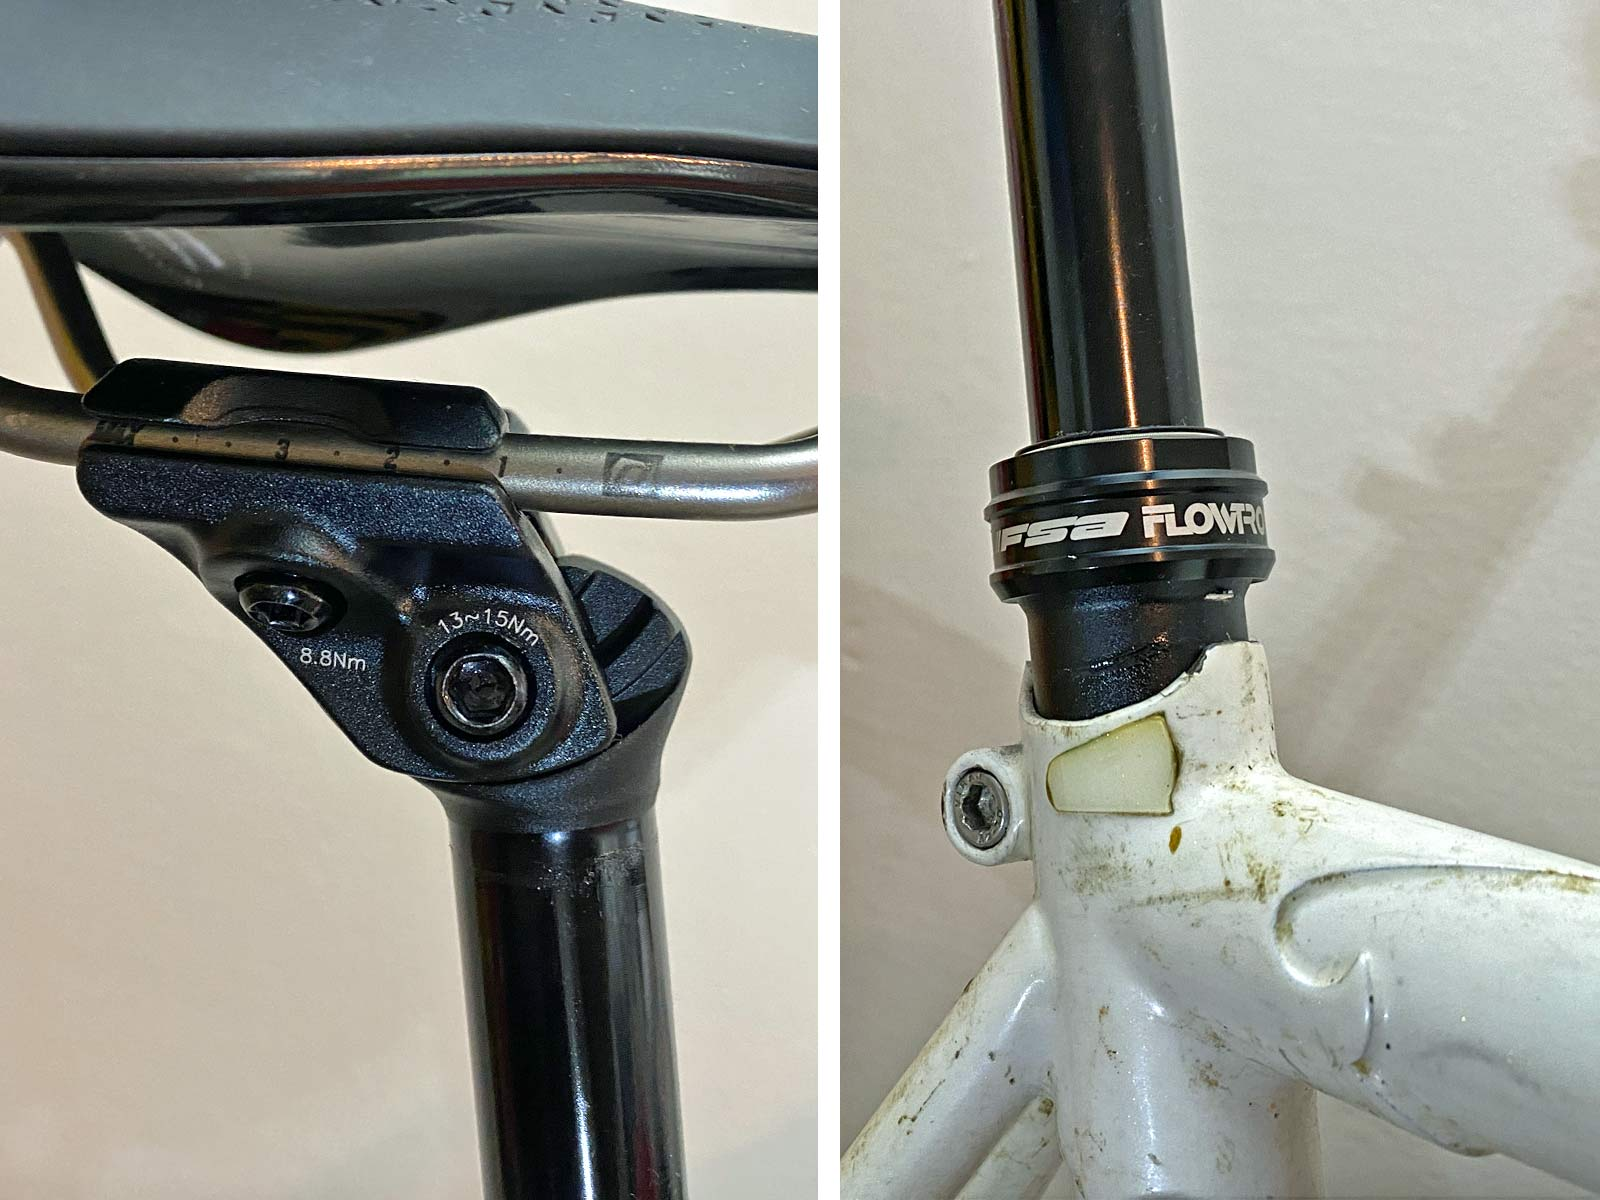 FSA Flowtron AGX gravel dropper post, First Look Review: 27.2mm internally routed dropper seatpost with dropbar remote,dropper details